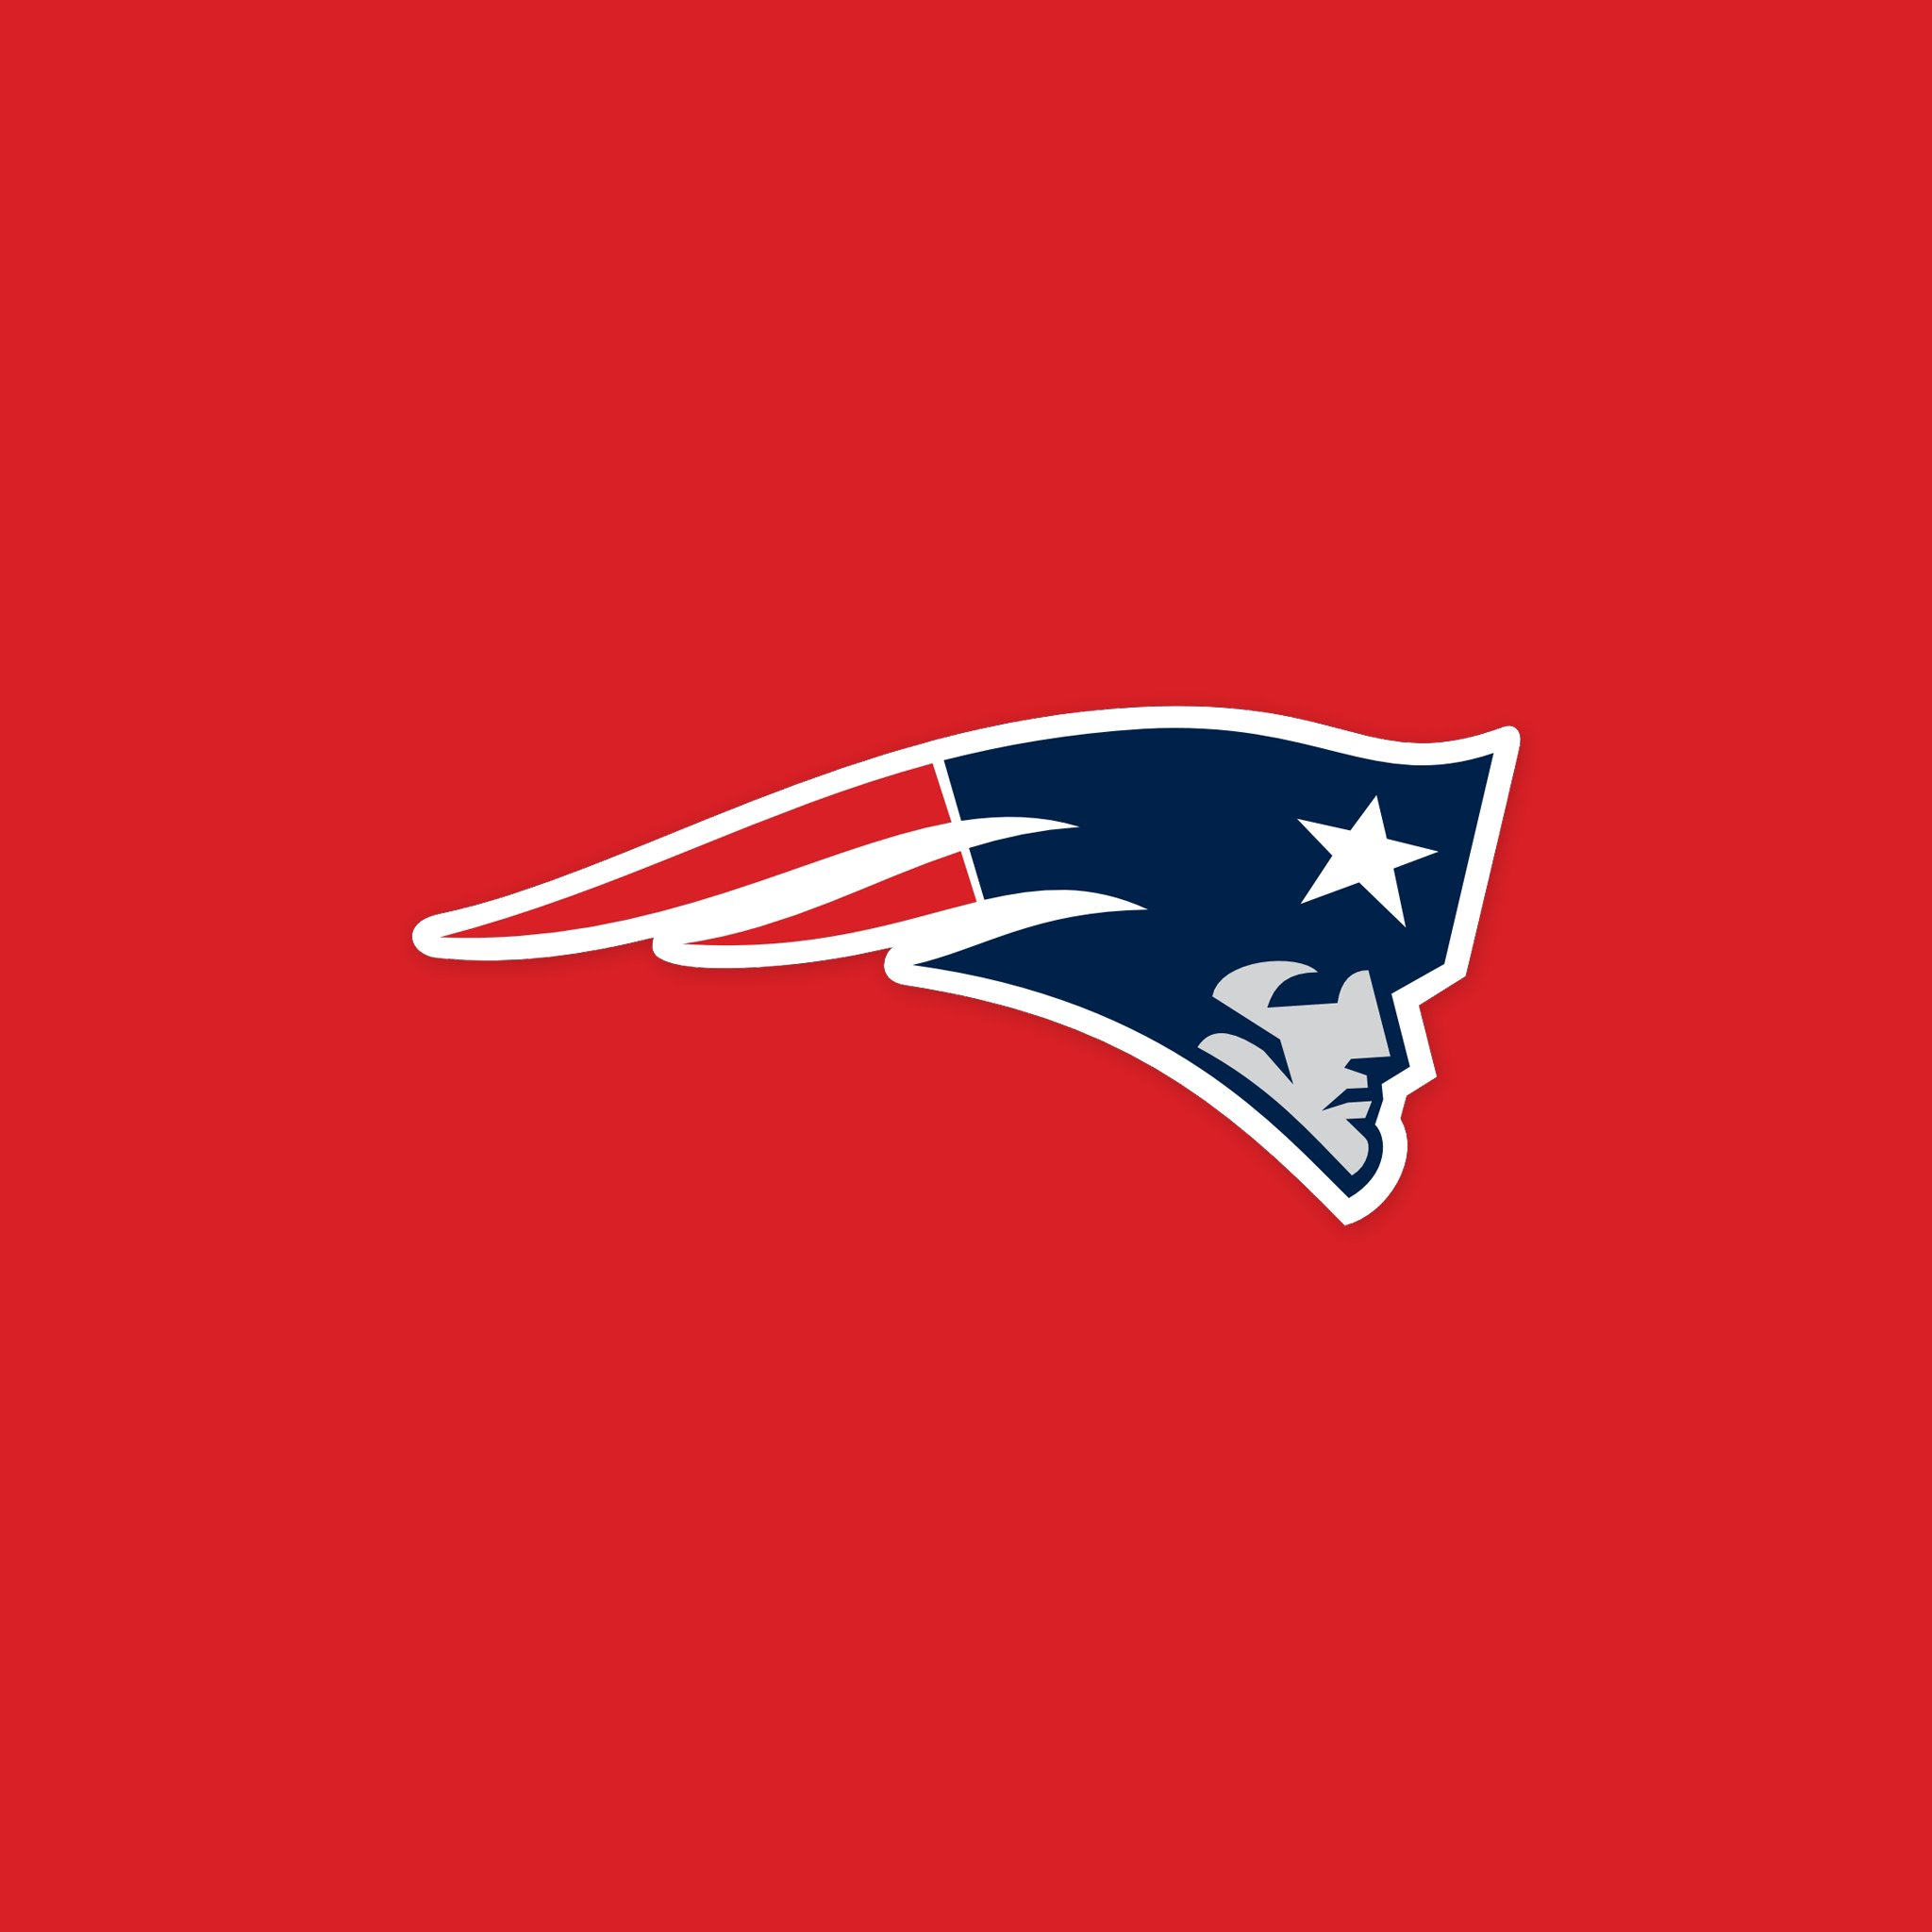 Patriots Logo Wallpaper: Patriots Phone Wallpaper